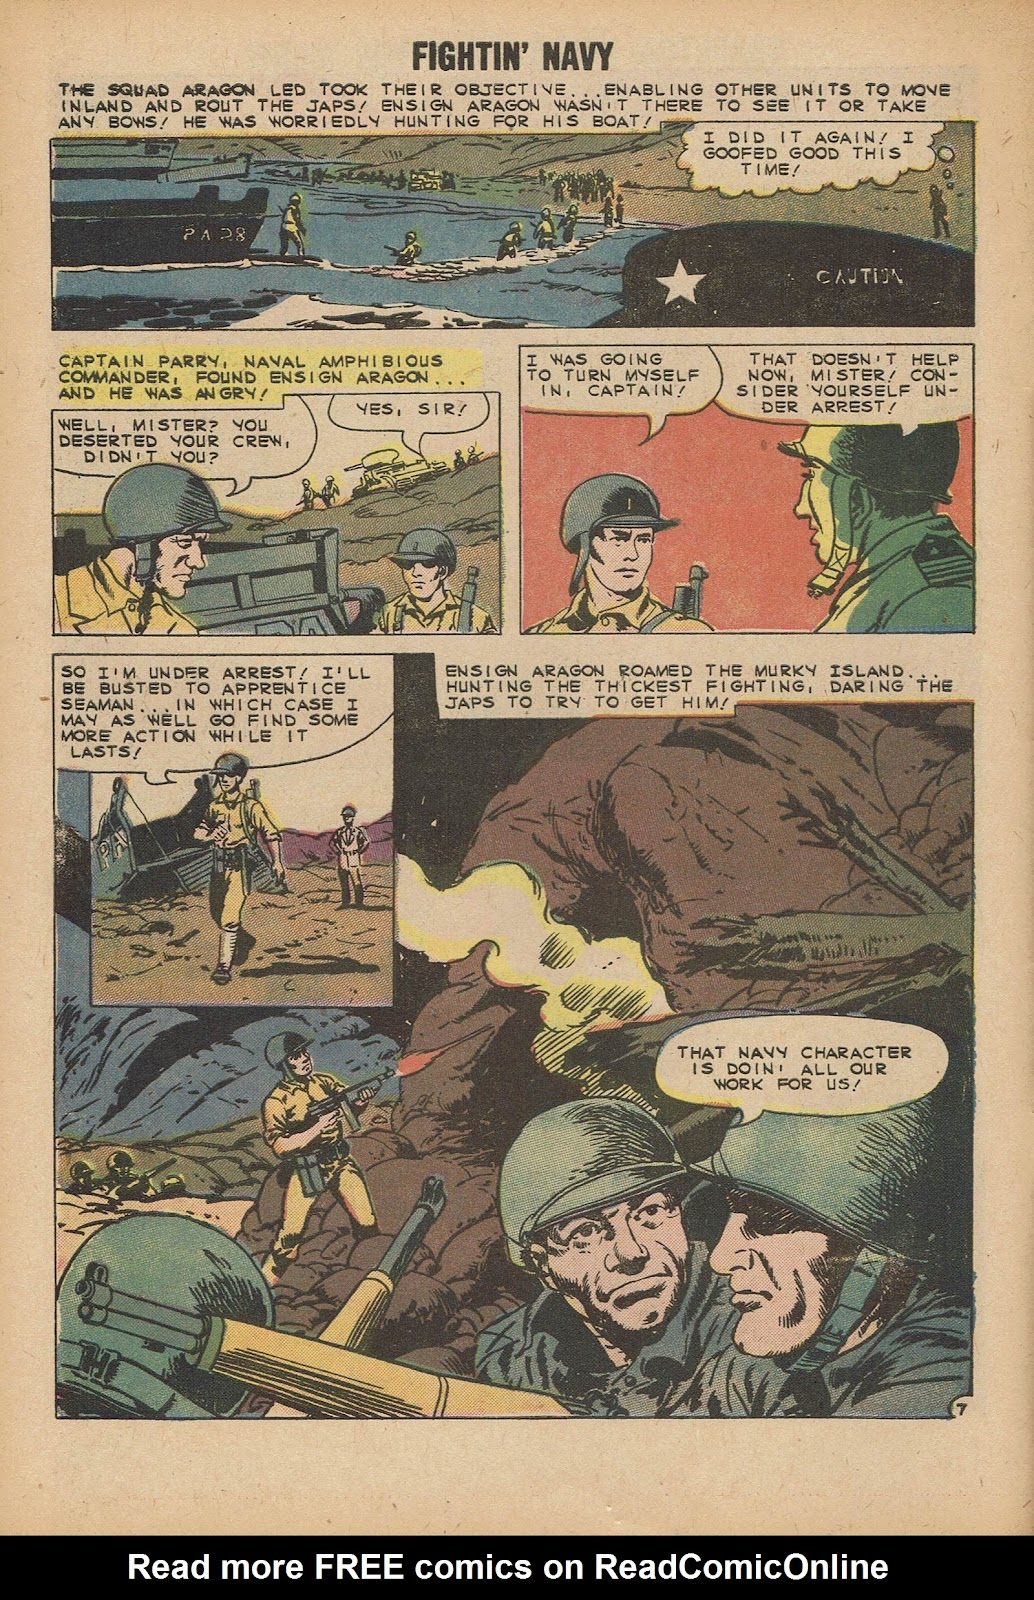 Read online Fightin' Navy comic -  Issue #92 - 10